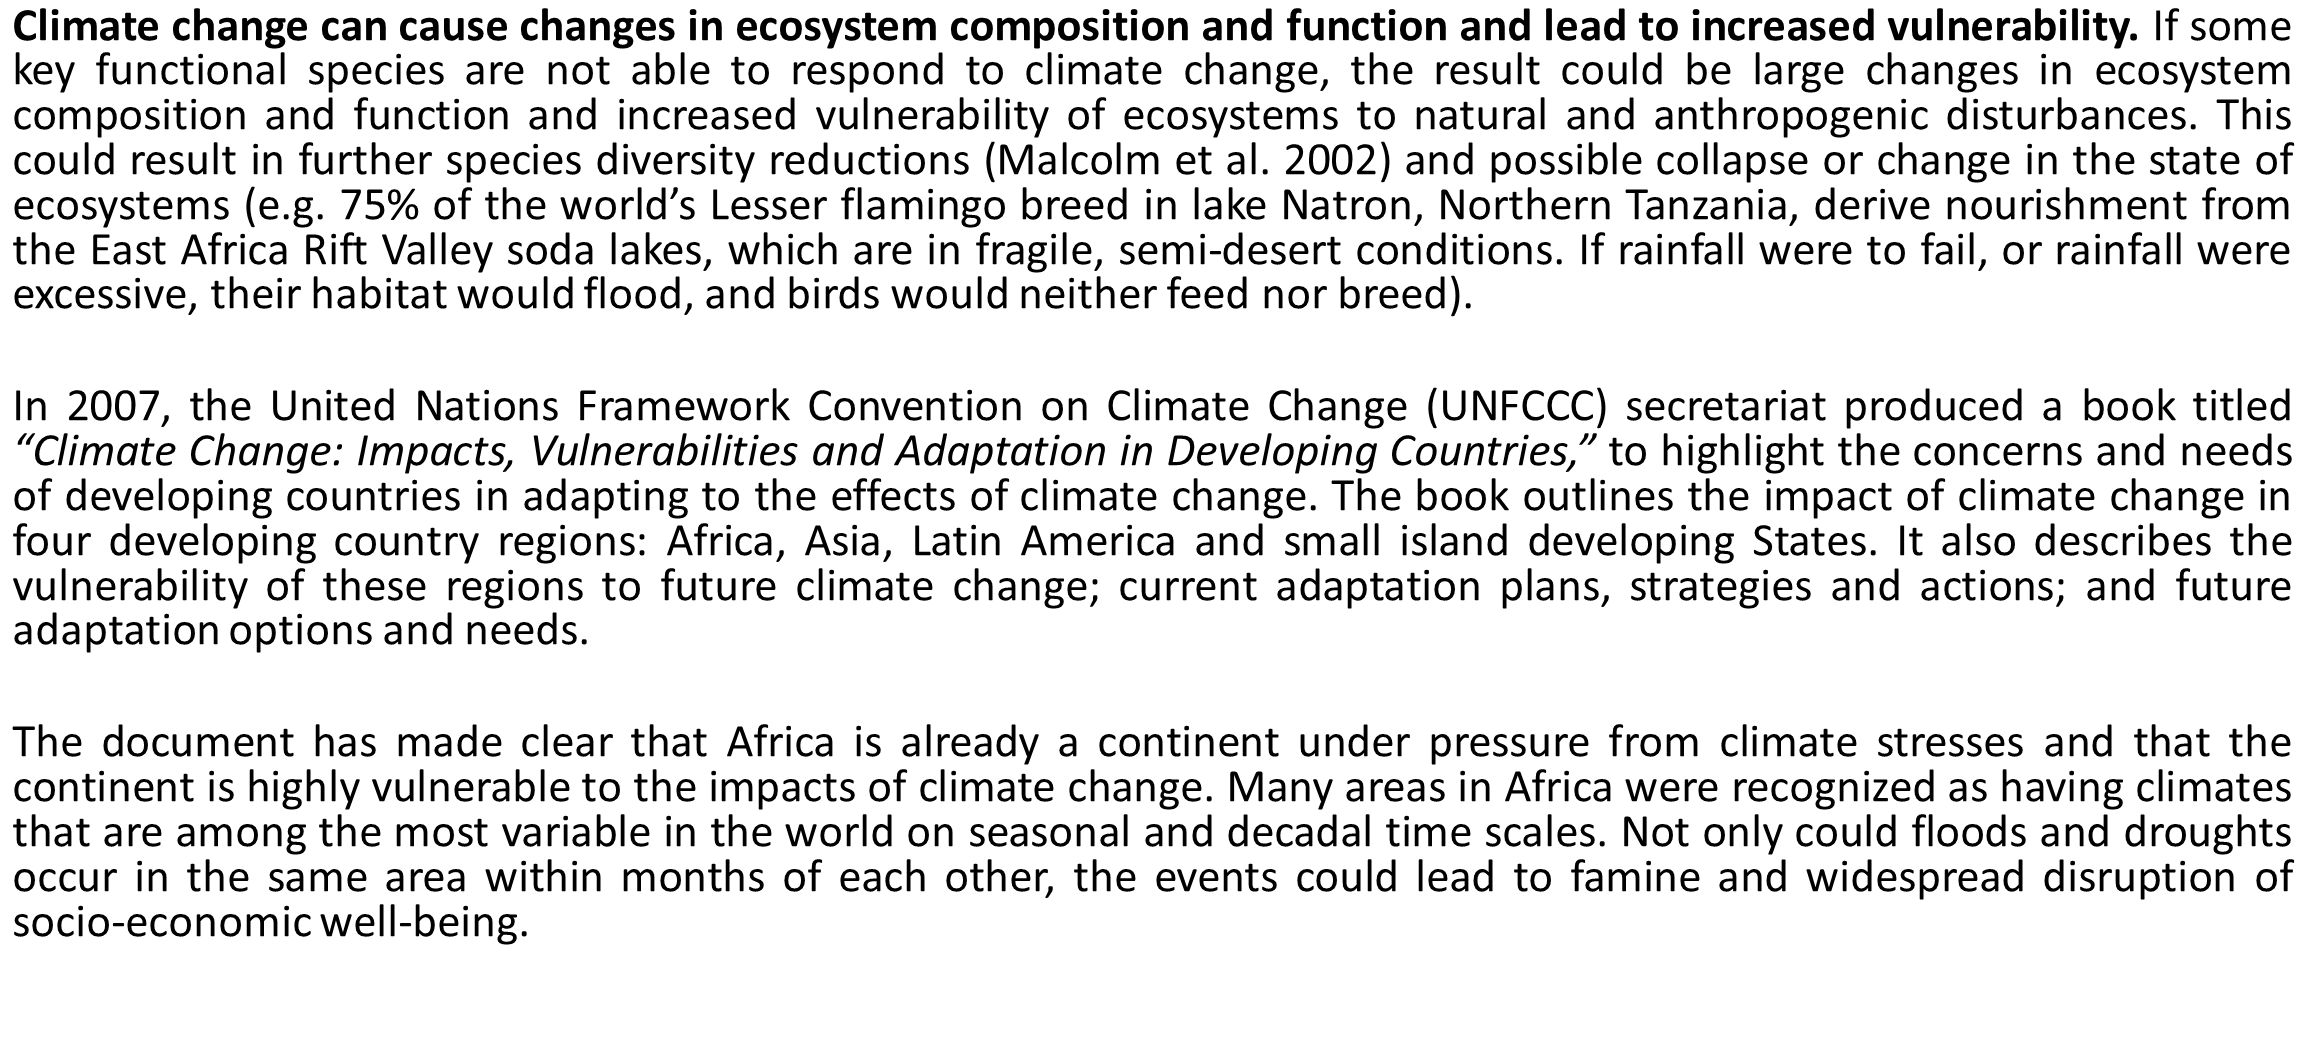 Climate change can cause changes in ecosystem composition and function and lead to increased vulnerability. If some key functional species are not able to respond to climate change, the result could be large changes in ecosystem composition and function and increased vulnerability of ecosystems to natural and anthropogenic disturbances. This could result in further species diversity reductions (Malcolm et al. 2002) and possible collapse or change in the state of ecosystems (e.g. 75% of the world's Lesser flamingo breed in lake Natron, Northern Tanzania, derive nourishment from the East Africa Rift Valley soda lakes, which are in fragile, semi-desert conditions. If rainfall were to fail, or rainfall were excessive, their habitat would flood, and birds would neither feed nor breed).